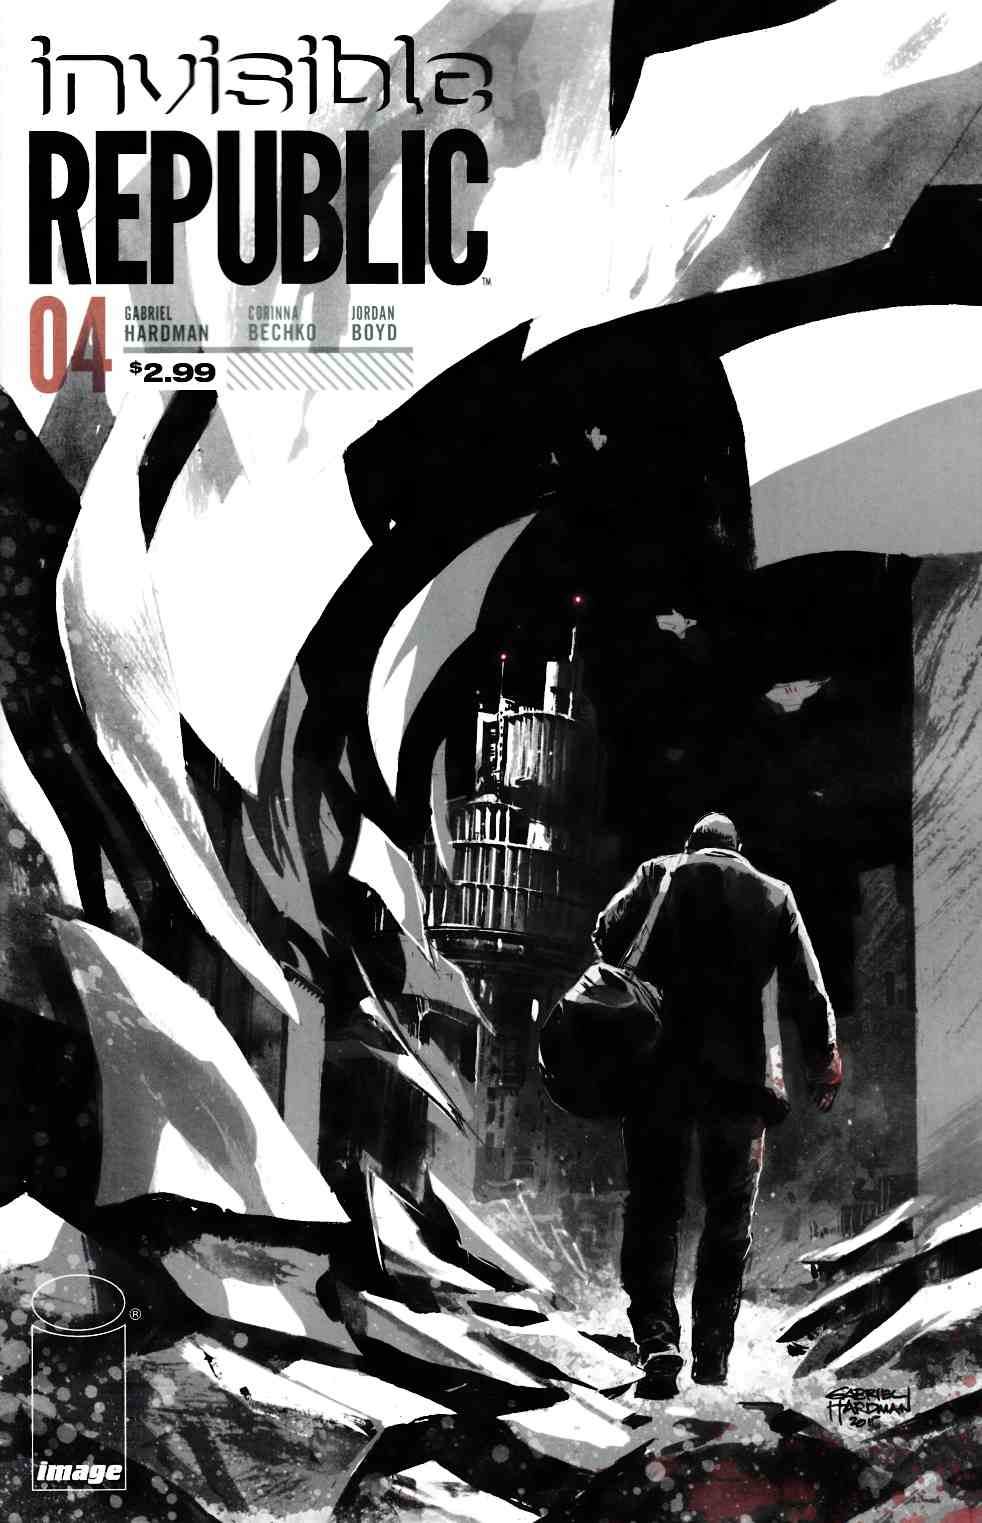 Invisible Republic #4 [Image Comic] THUMBNAIL